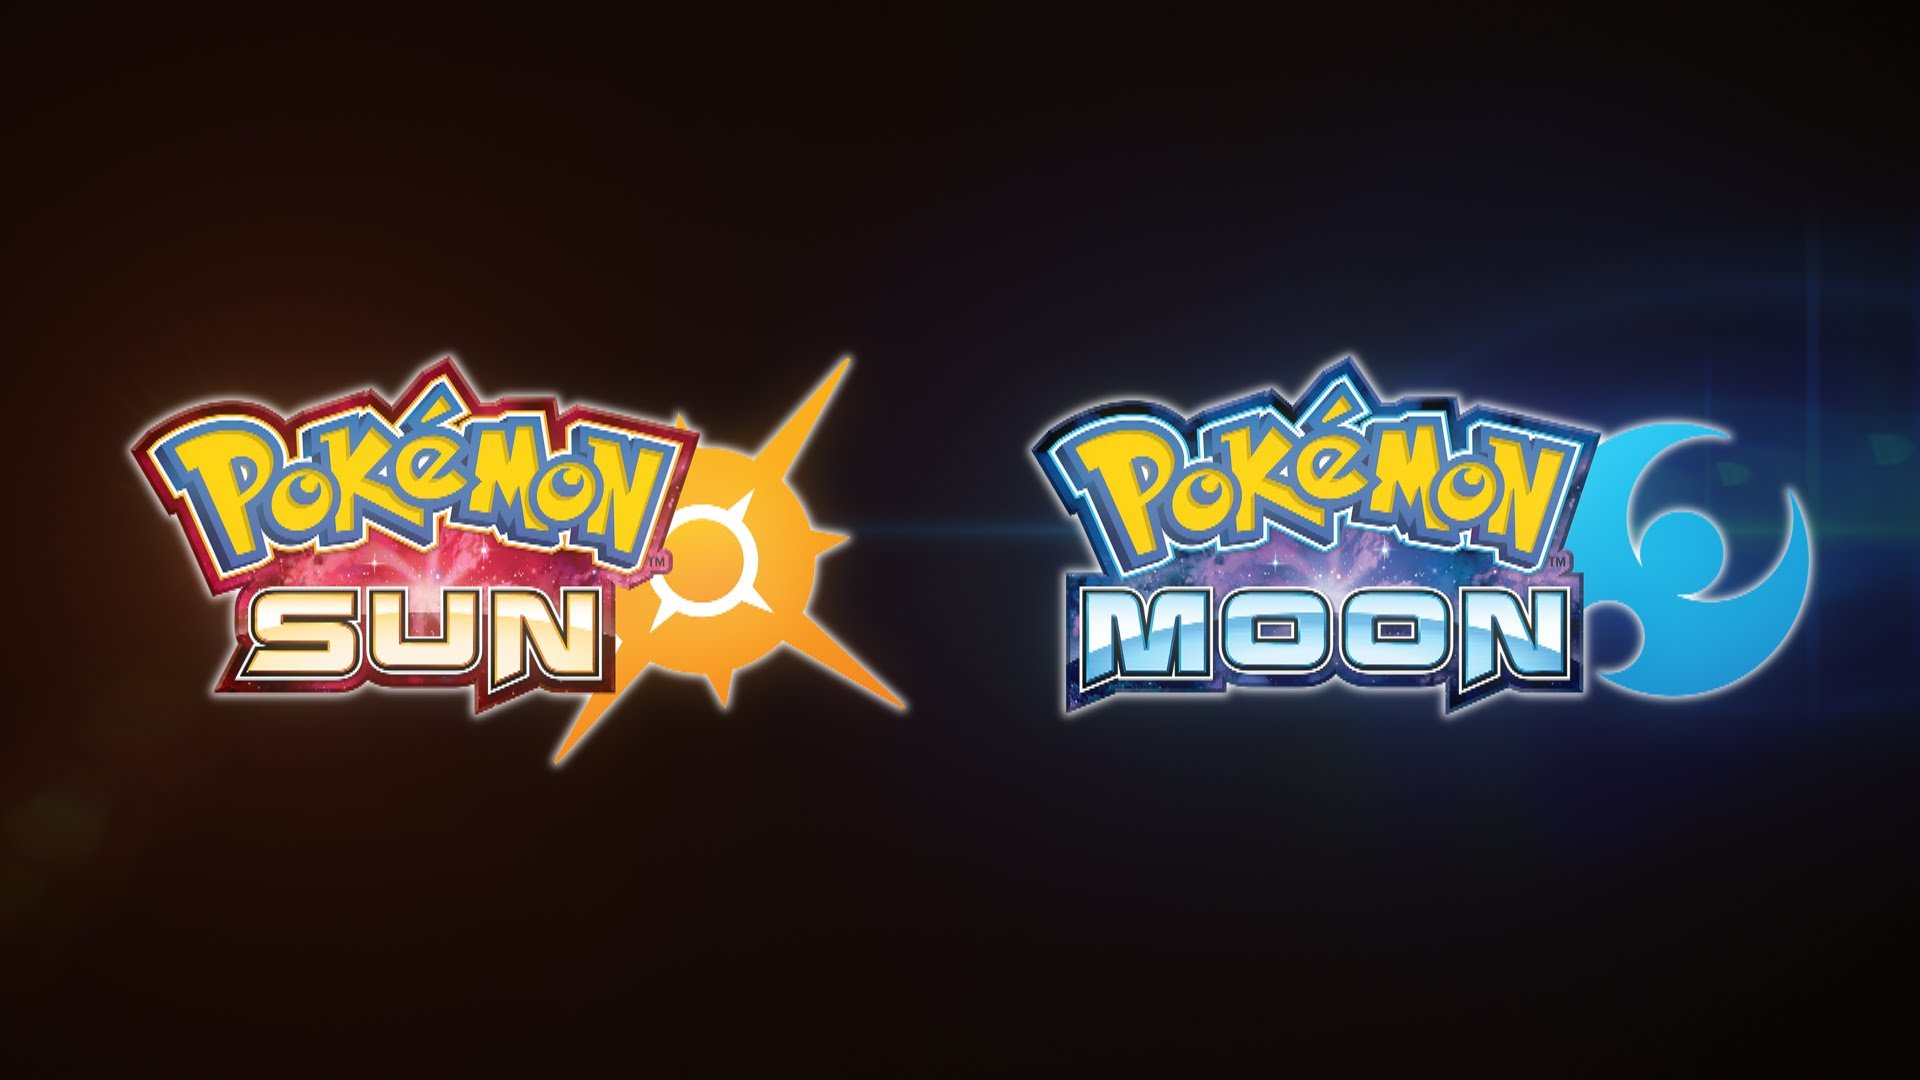 Pokemon Sun & Moon Amazon Best-Selling Holday 2016